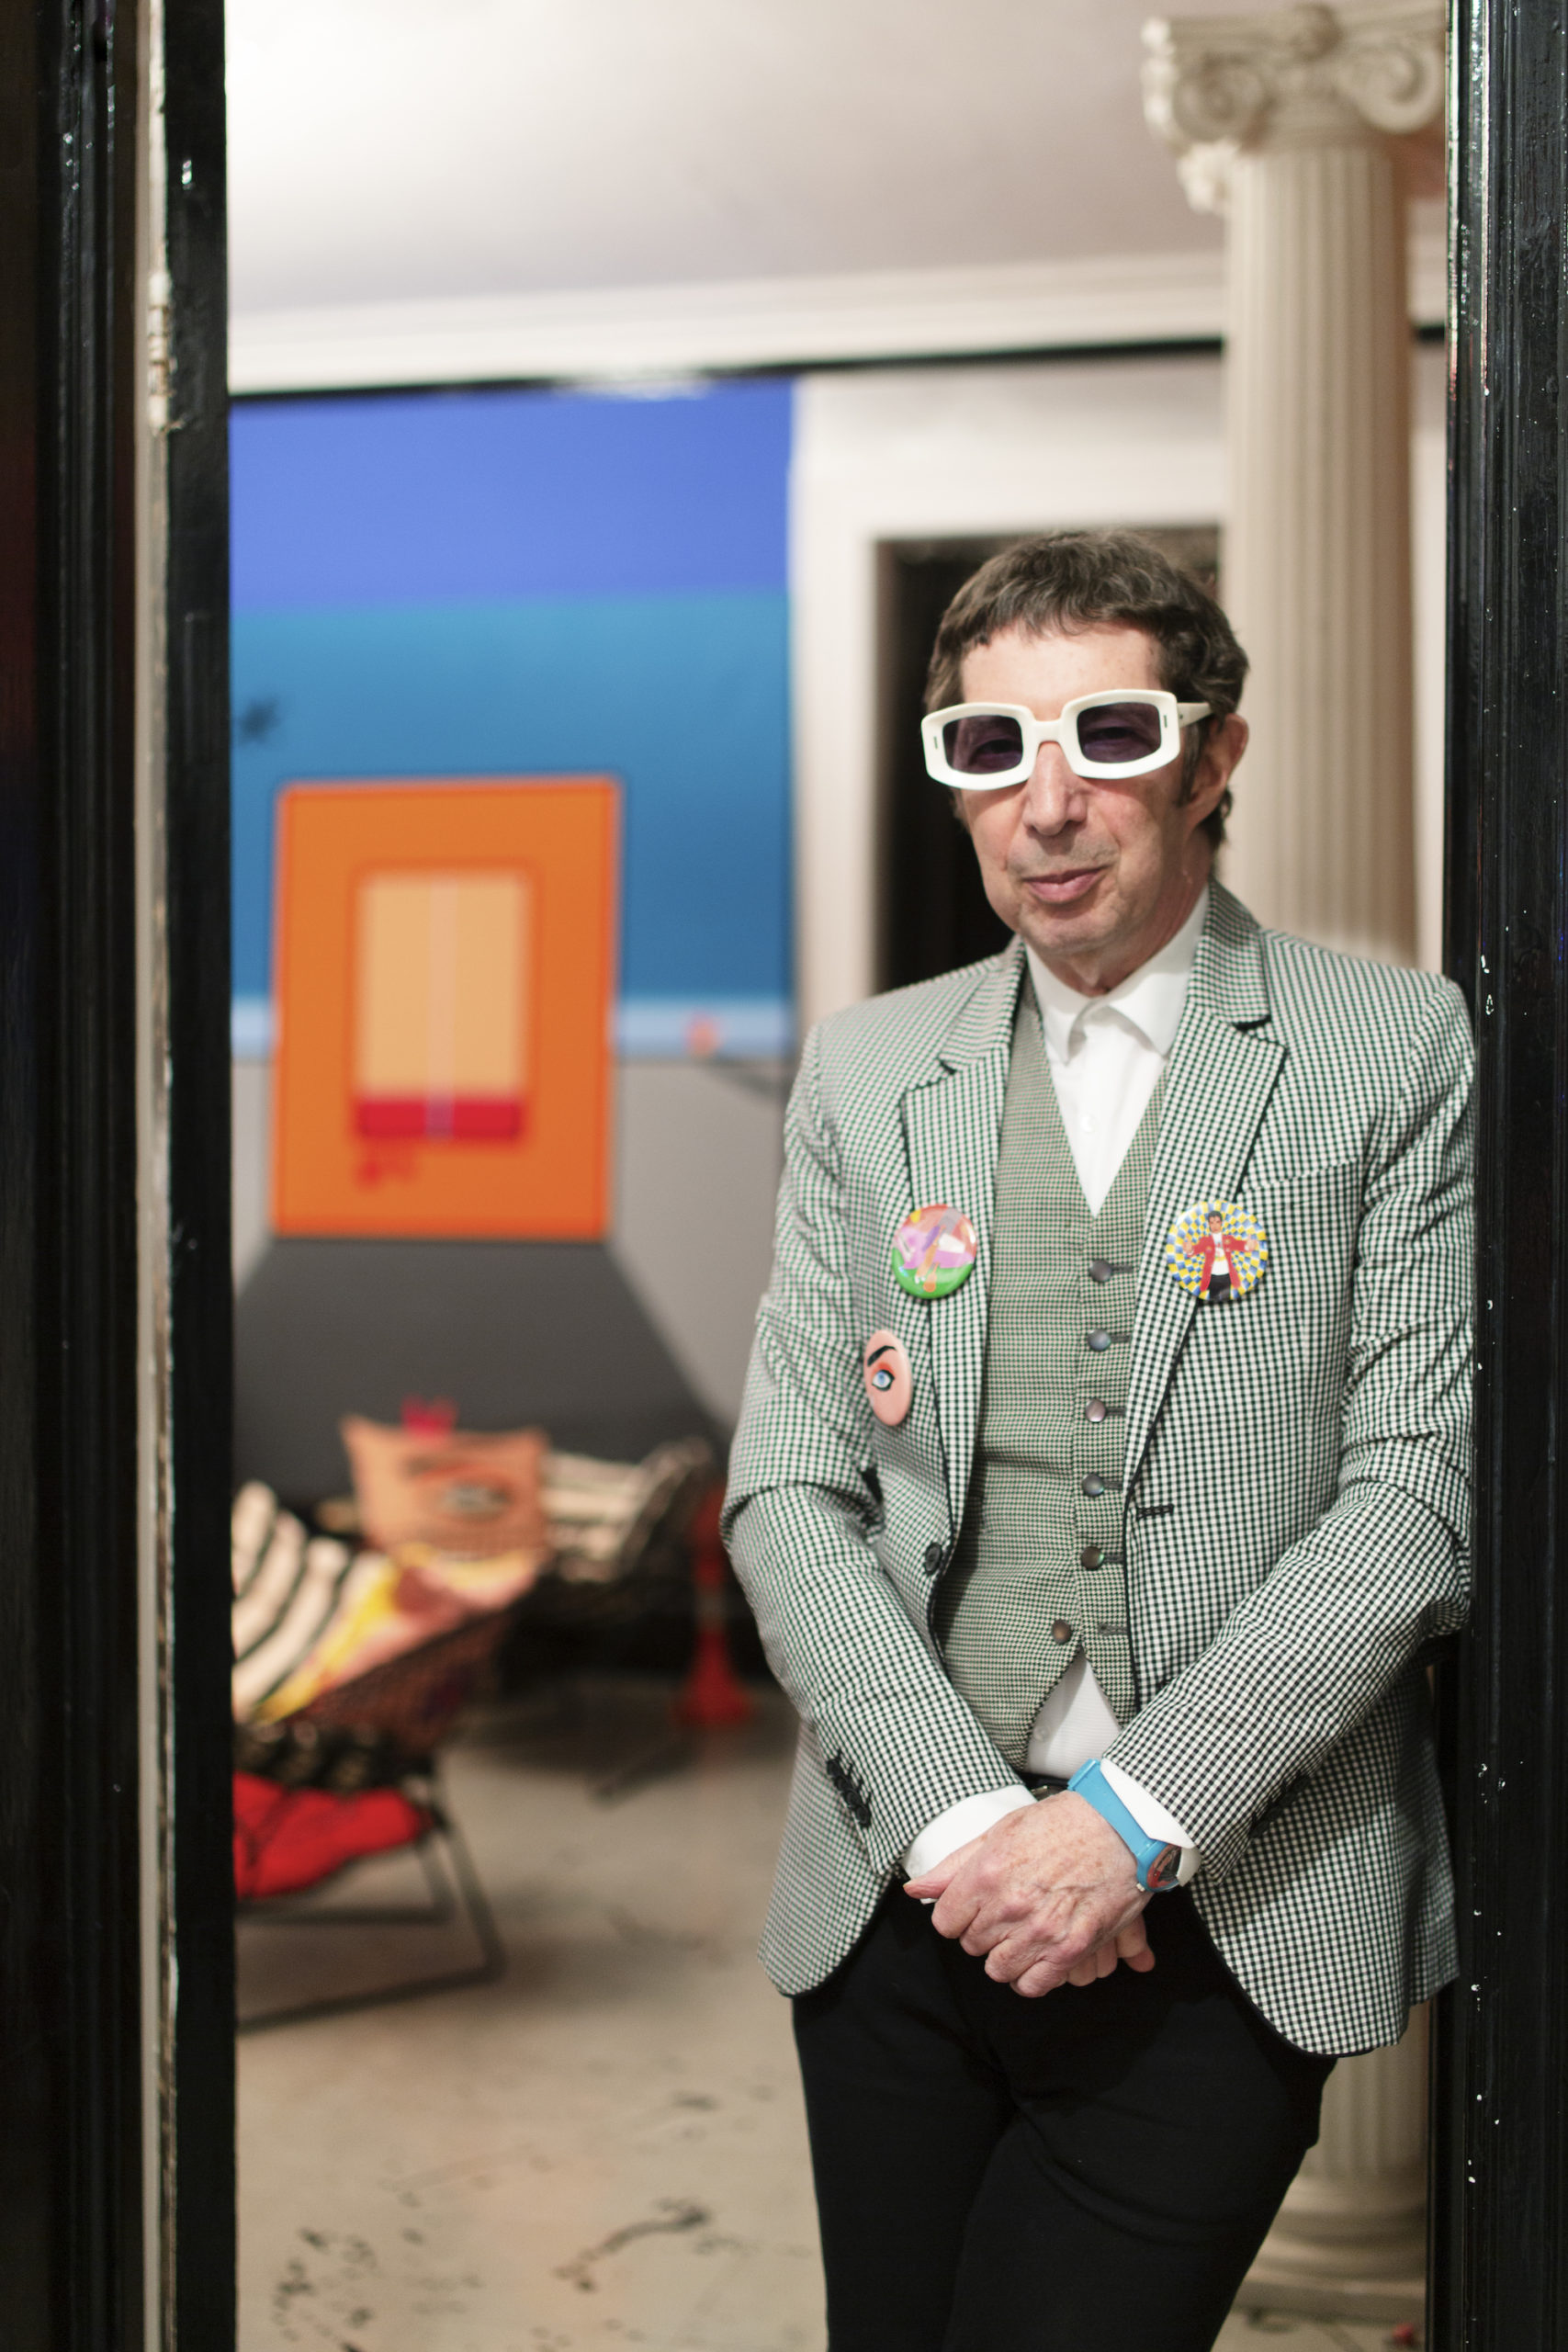 Duggie Fields at home, 2020. Photographed by Louise Benson for Elephant